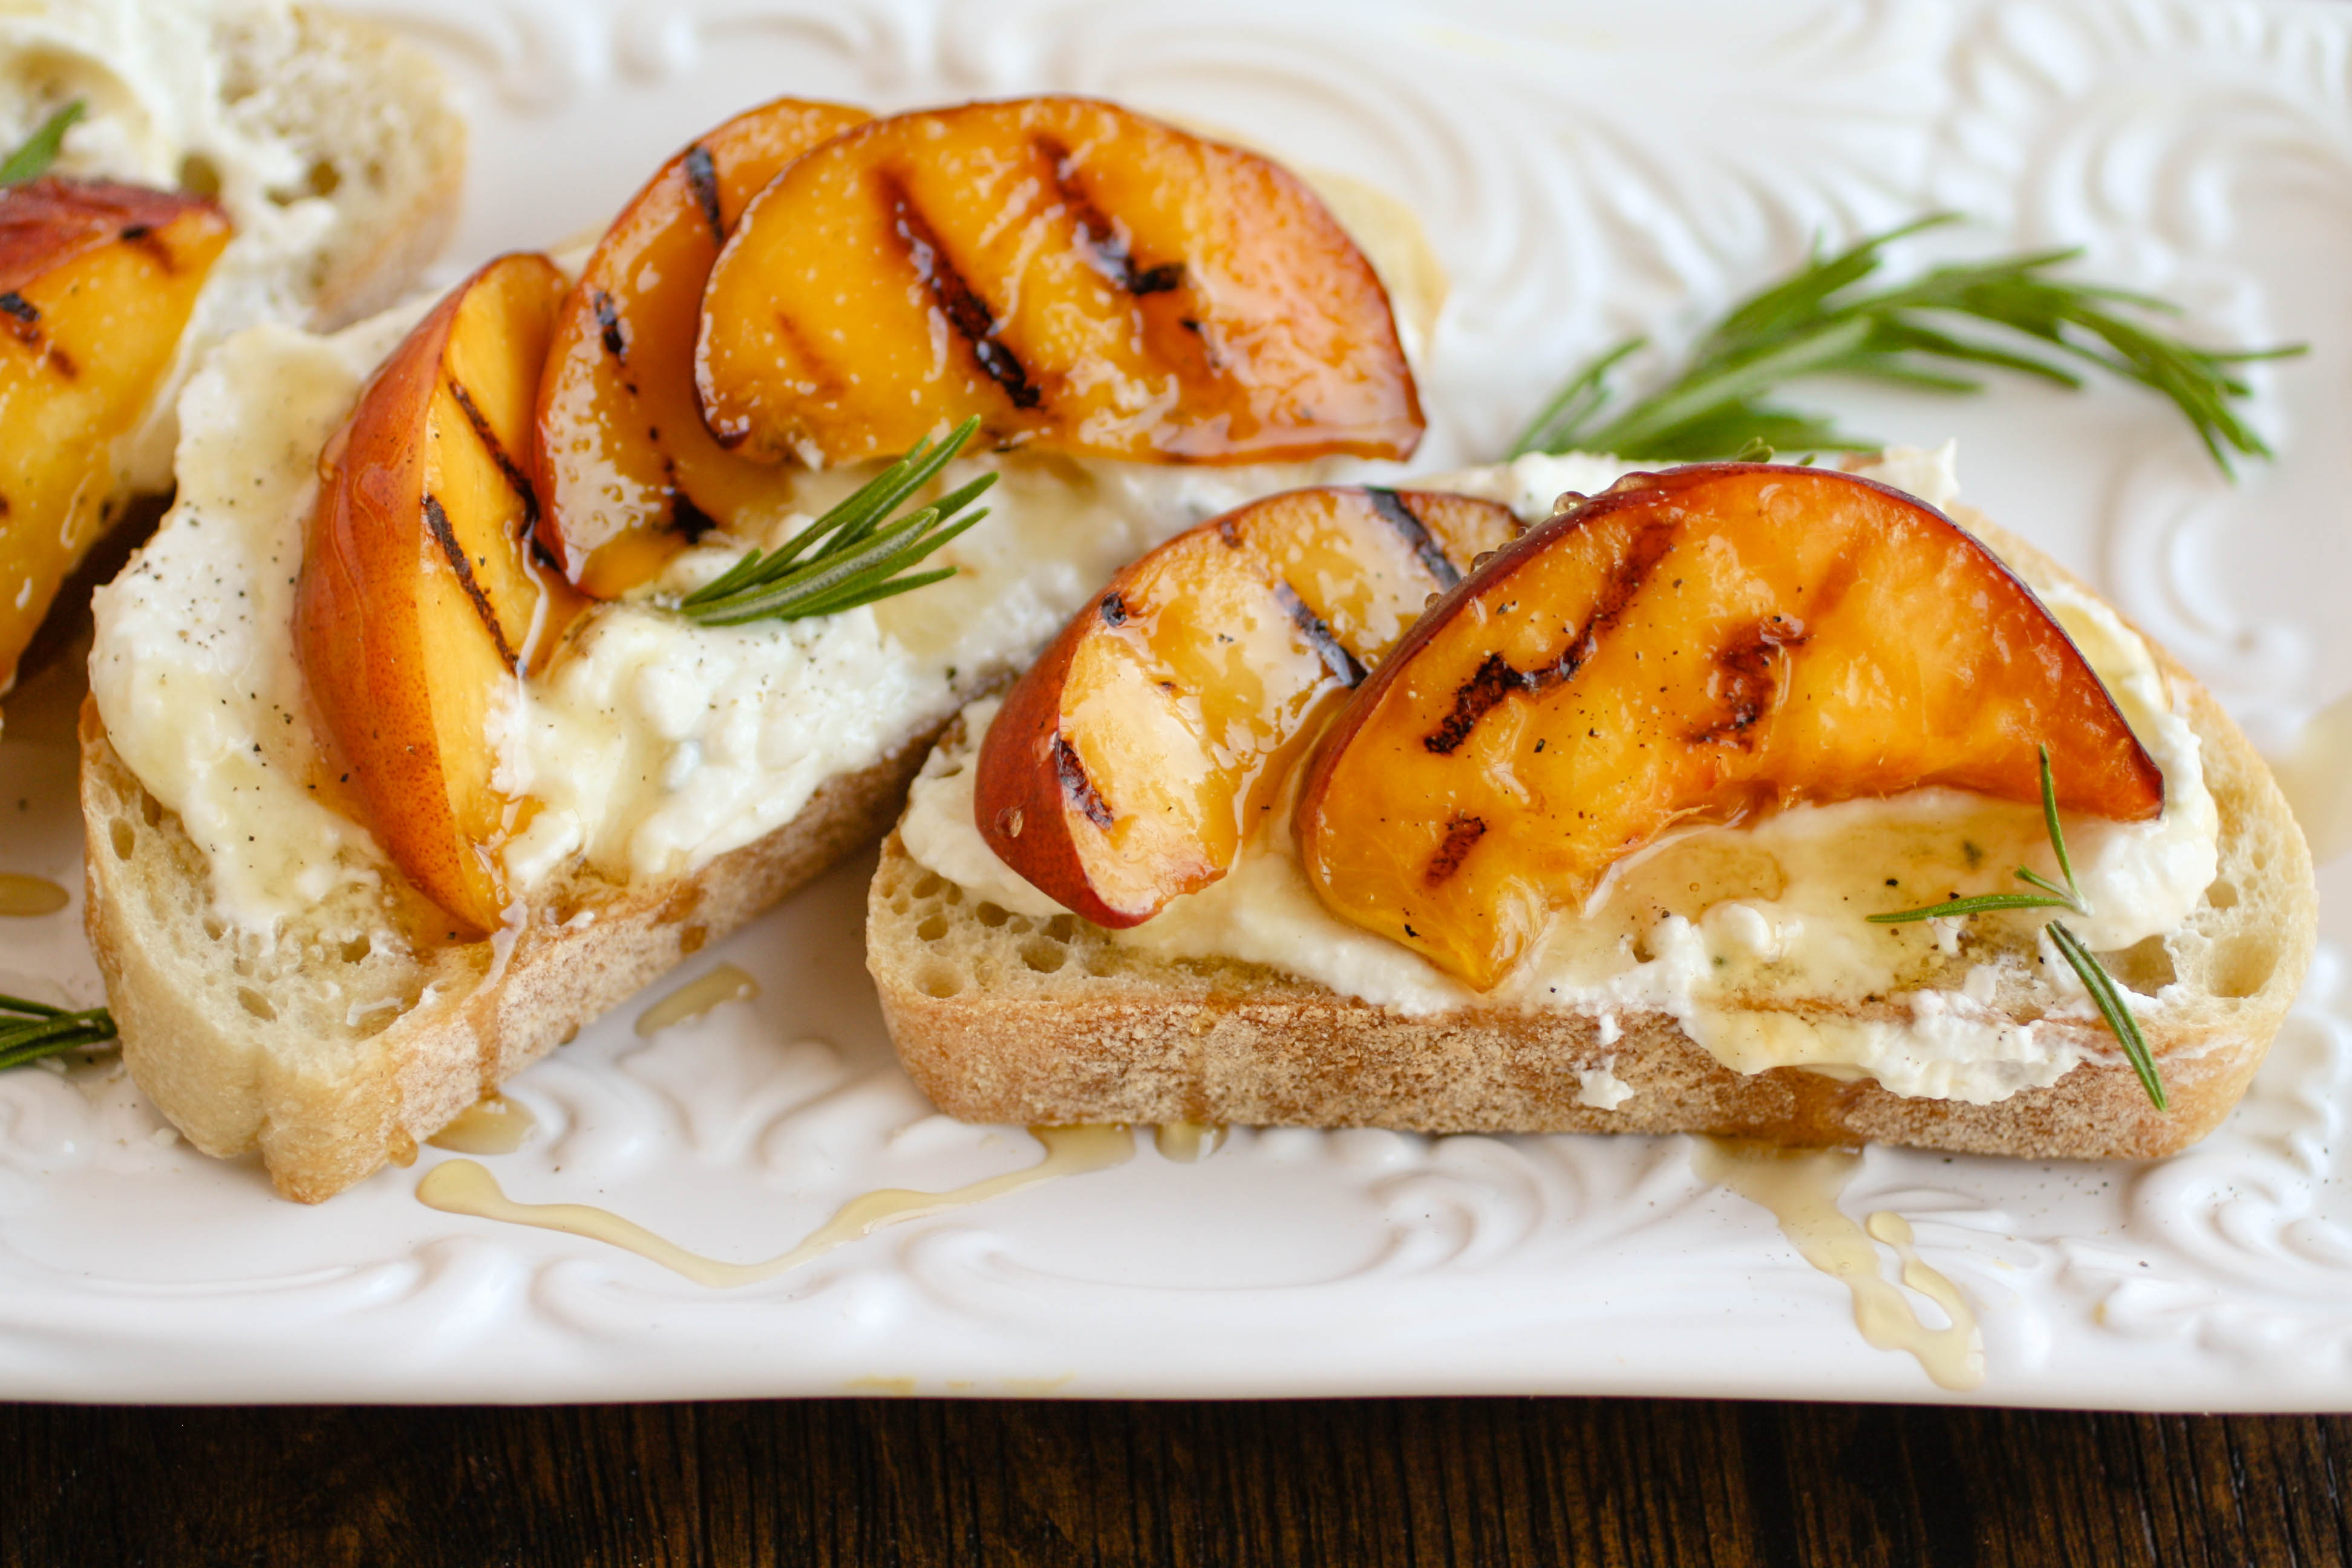 Rosemary Whipped Feta with Grilled Peaches and Honey is the cheese spread you need in your life! This makes a great appetizer for any get together.